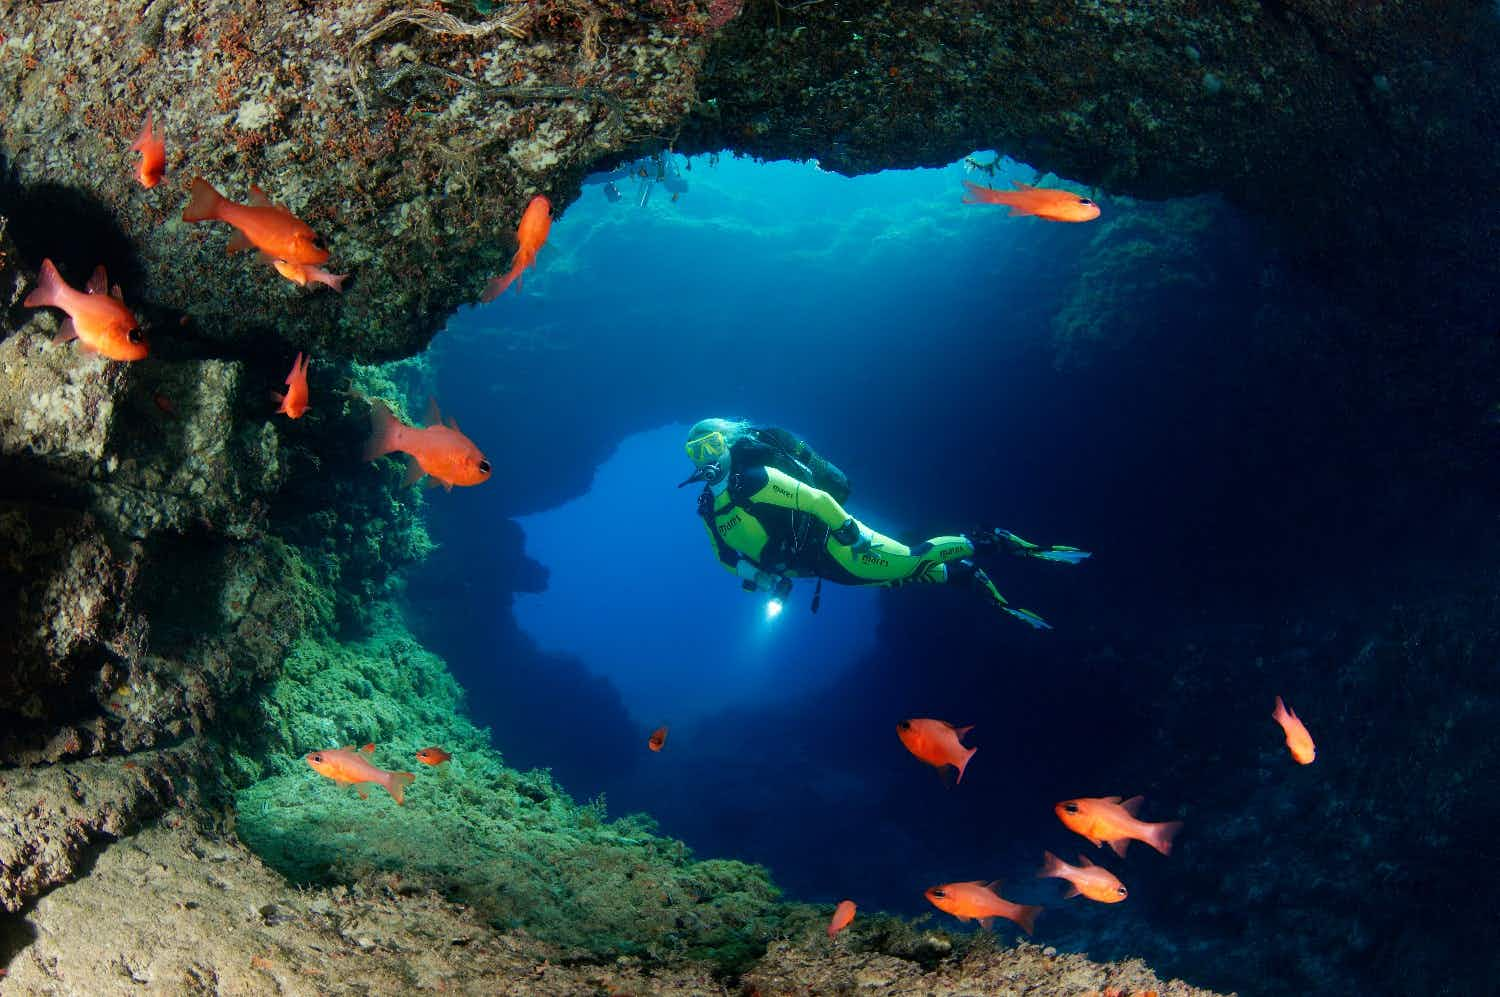 Divers can explore Malta, Gozo and Comino with a new trail